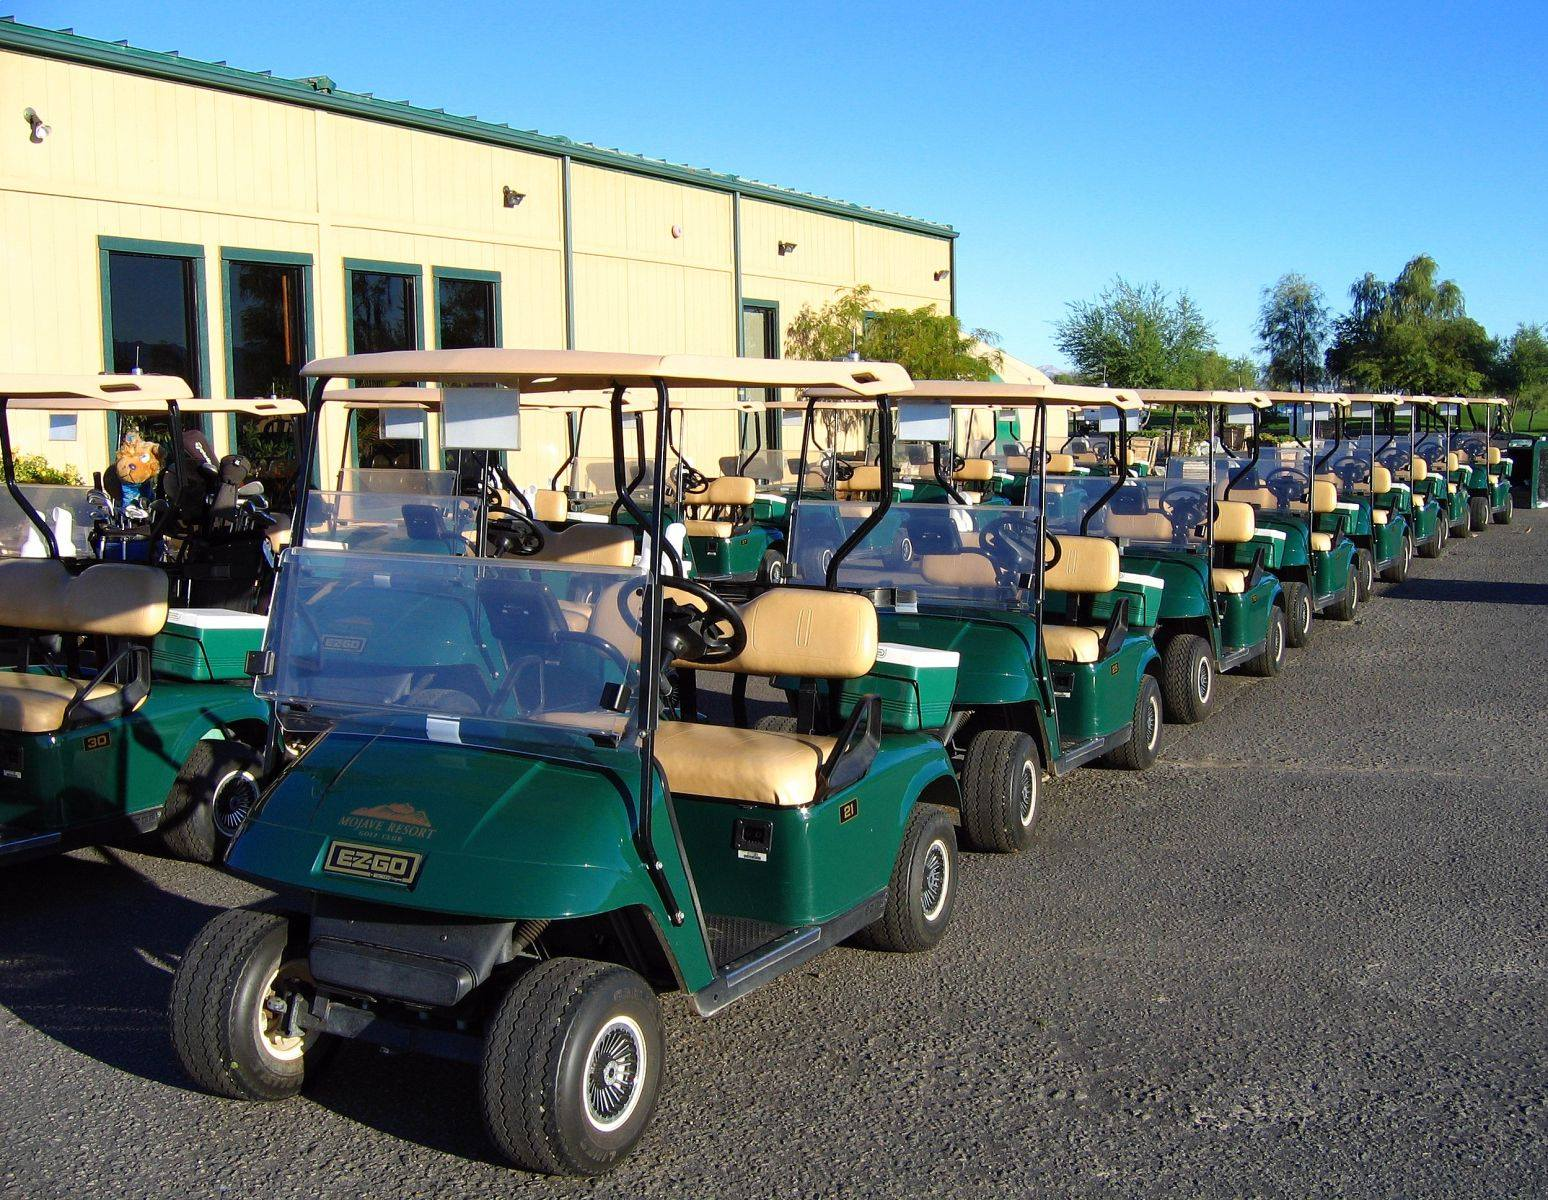 A row of golf carts lined up, ready for the next golf tournament